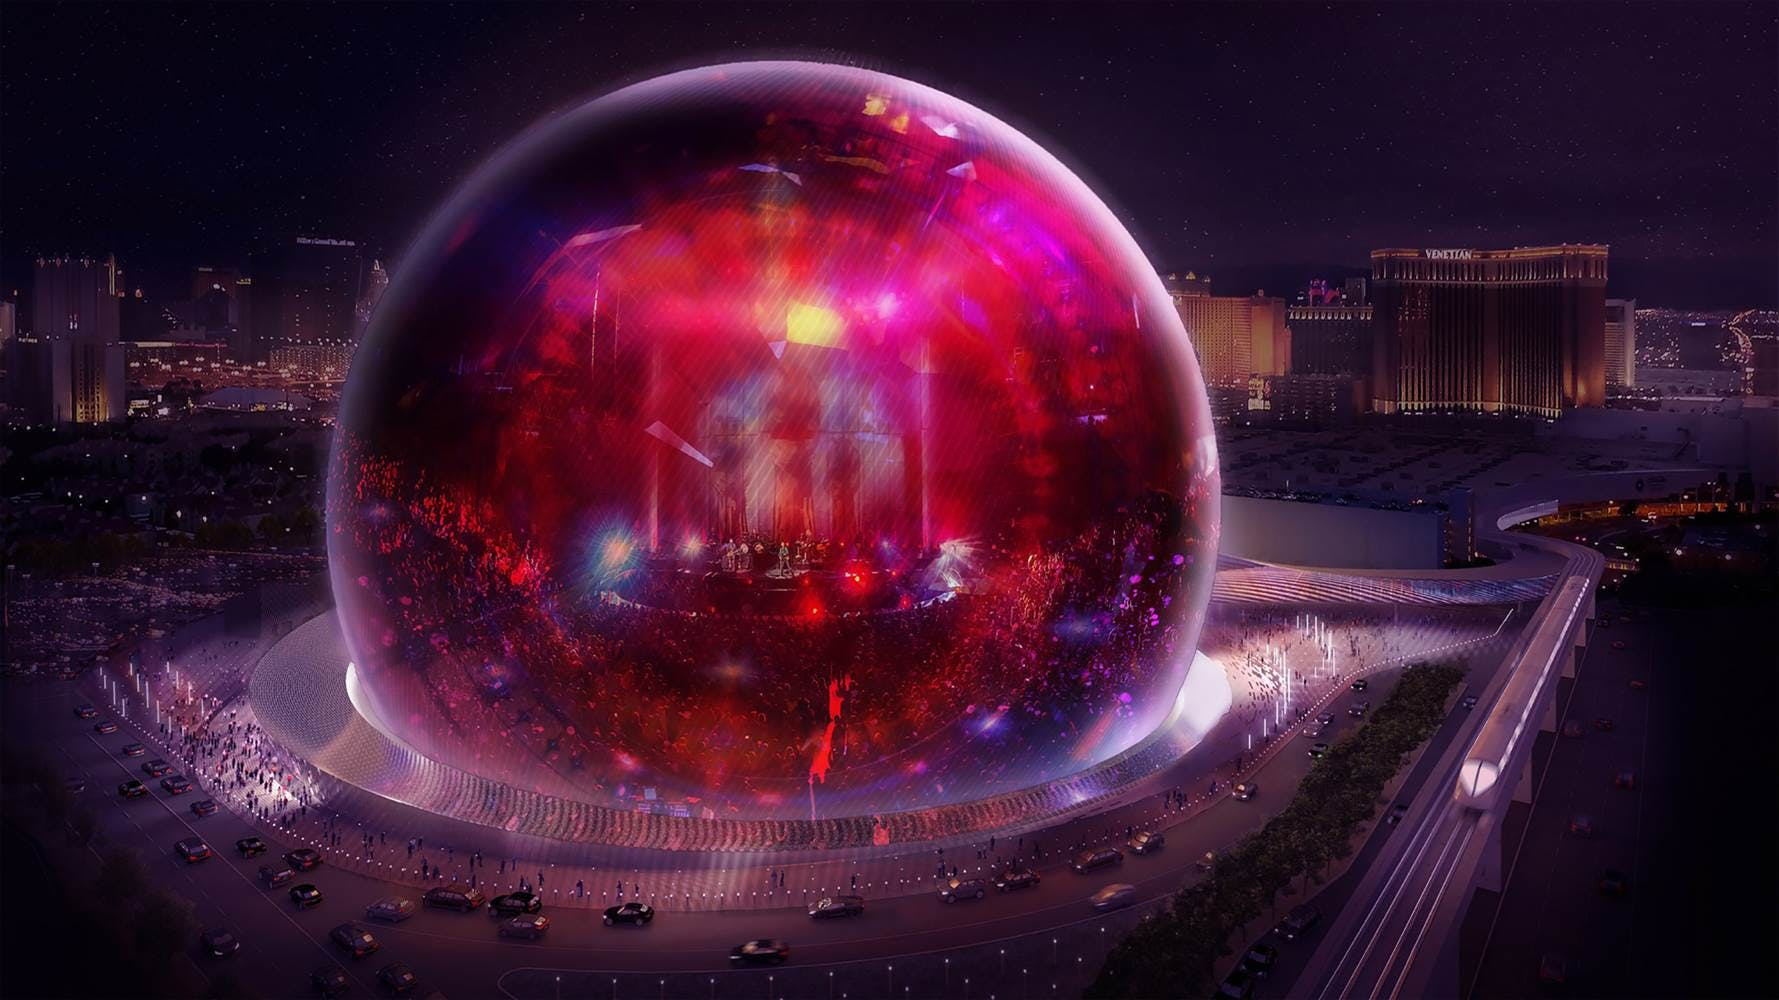 london msg concert venue confirmed new sphere designs unveiled for